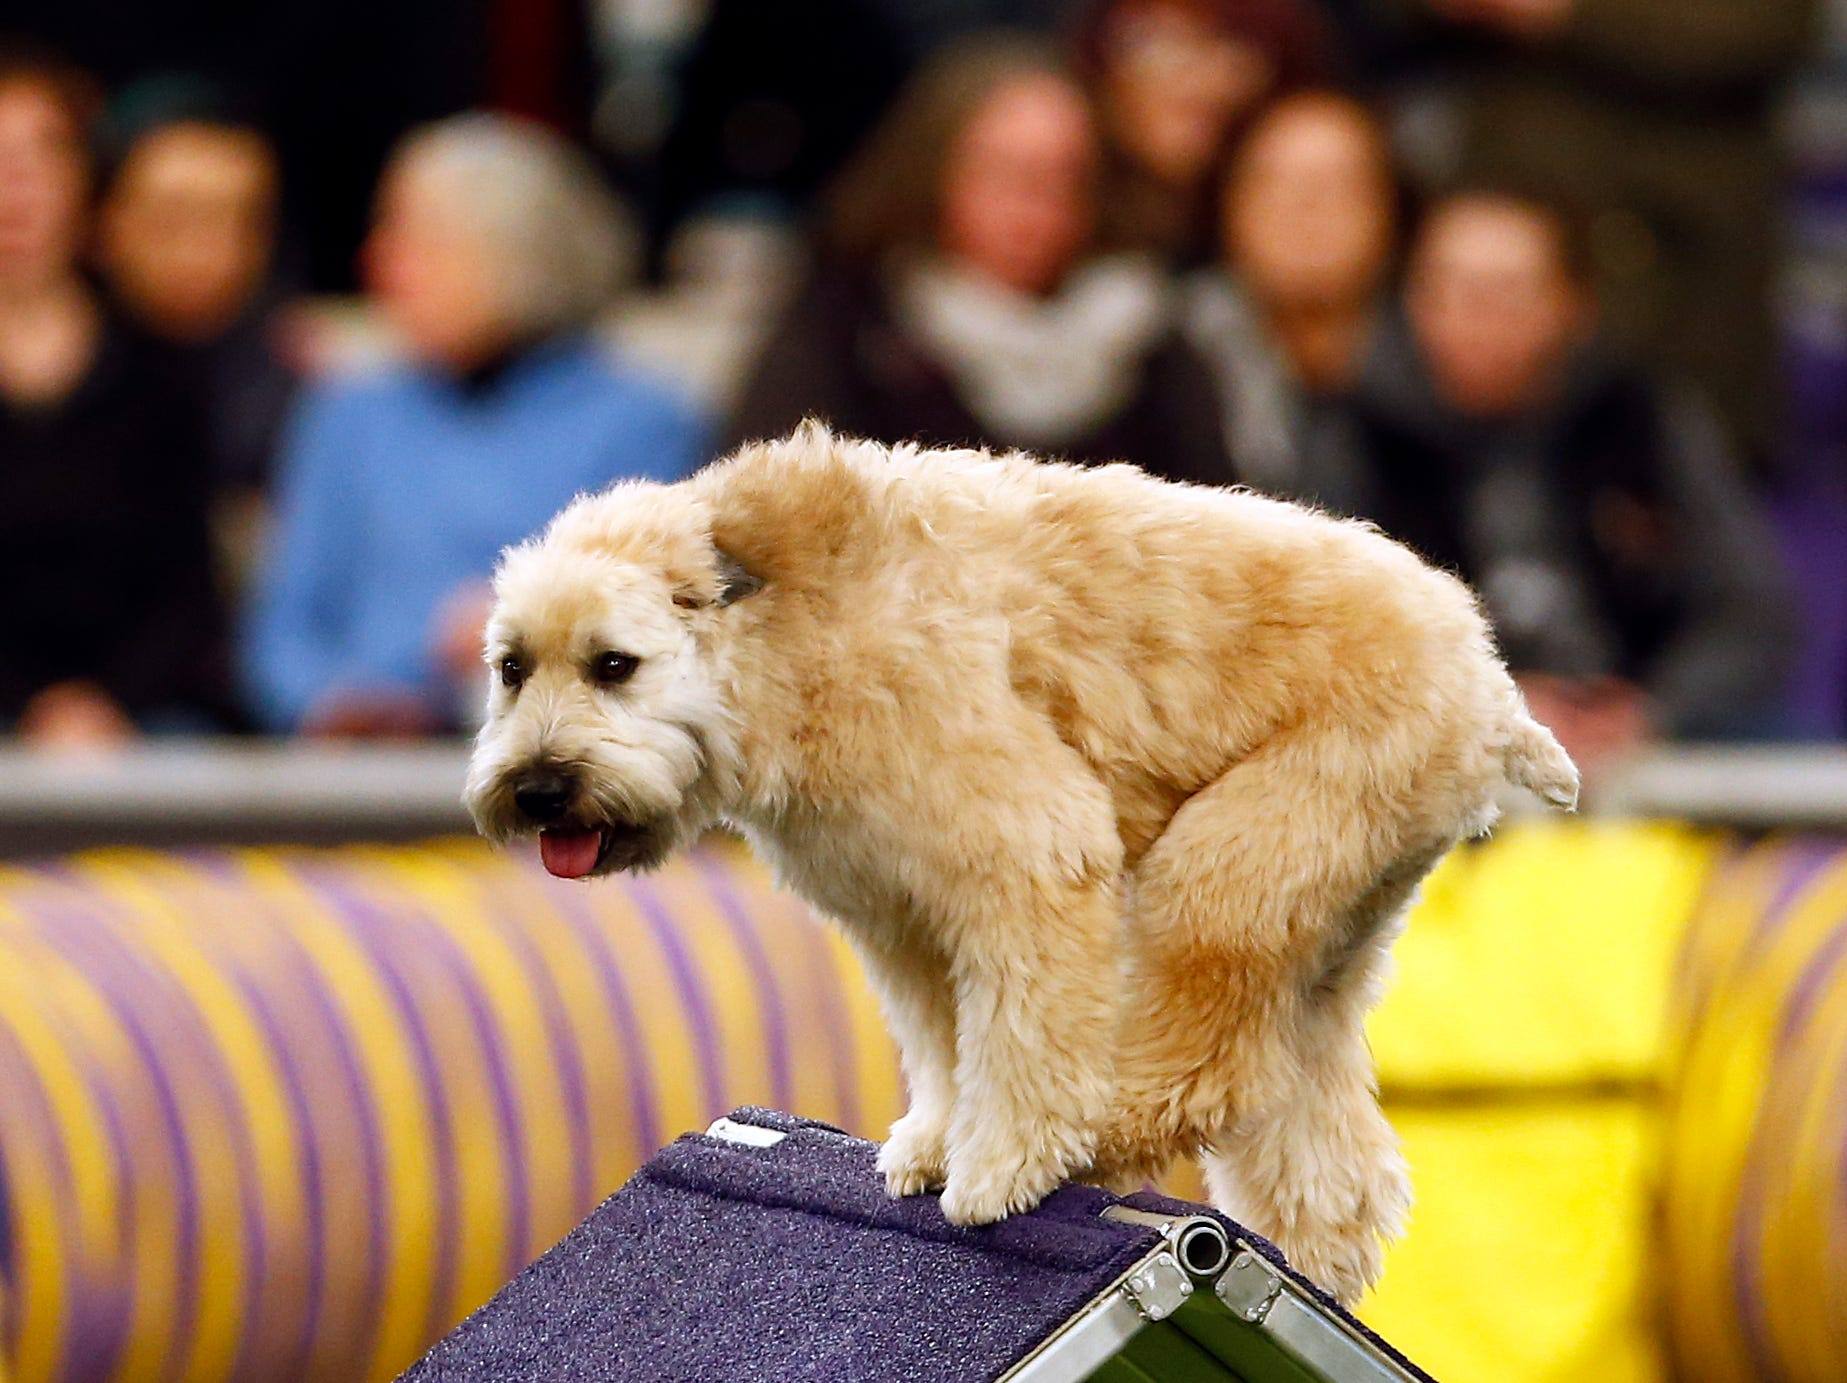 Yogi, a Soft Coated Wheaten Terrier, is seen during masters agility preliminaries at the 143rd Annual Westminster Kennel Club Dog Show at Piers 92/94.